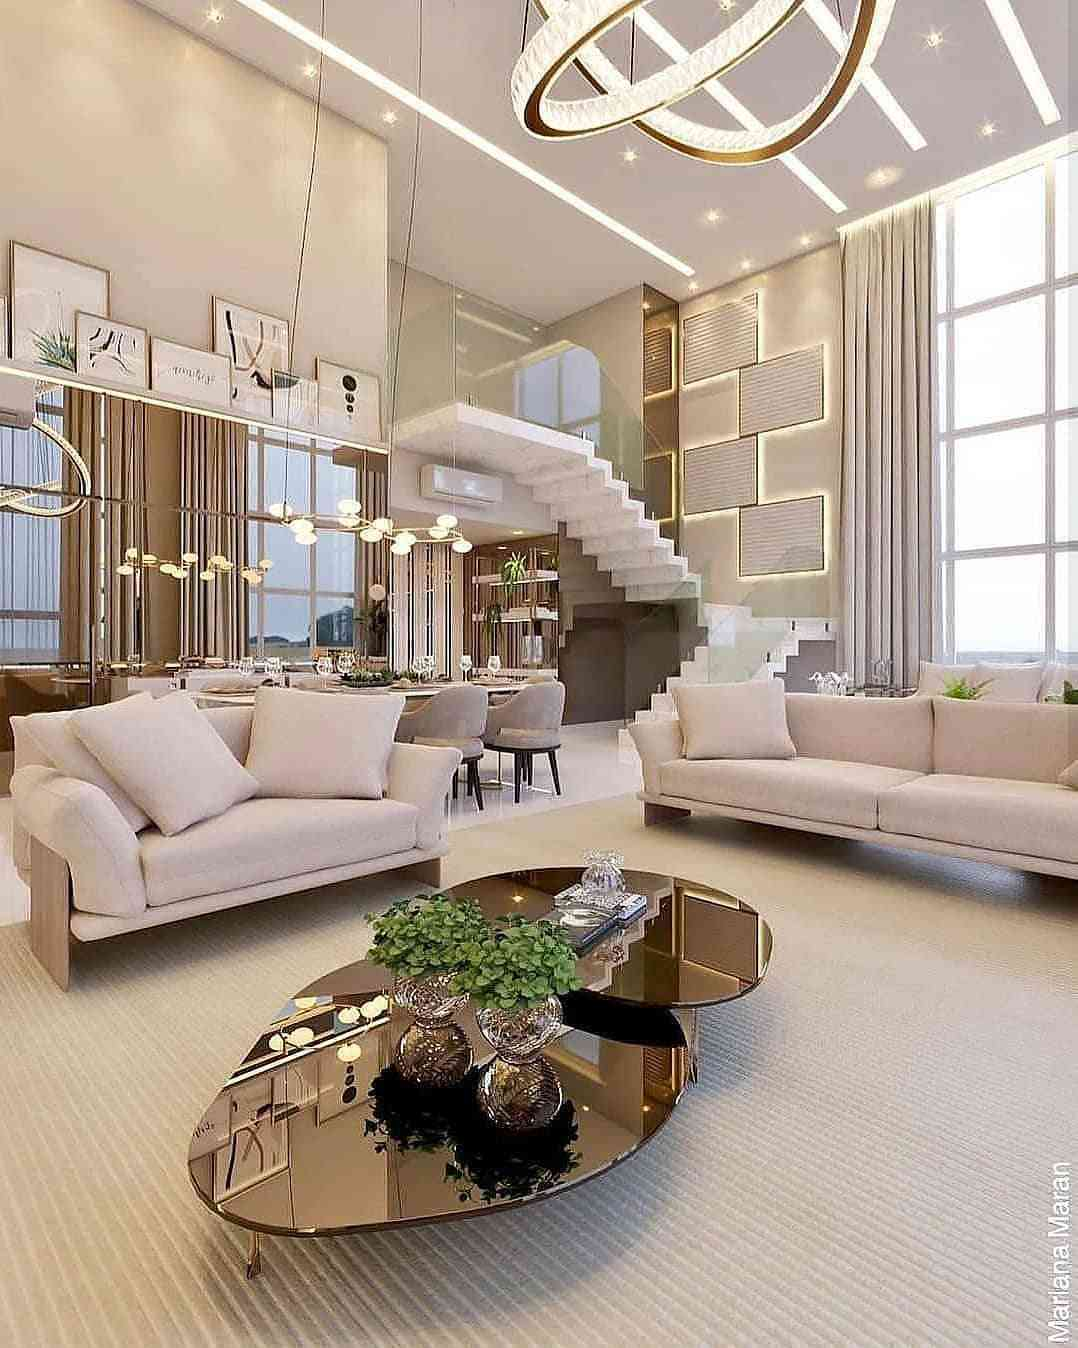 35 Beautiful Home Design Pictures & Ideas images 4